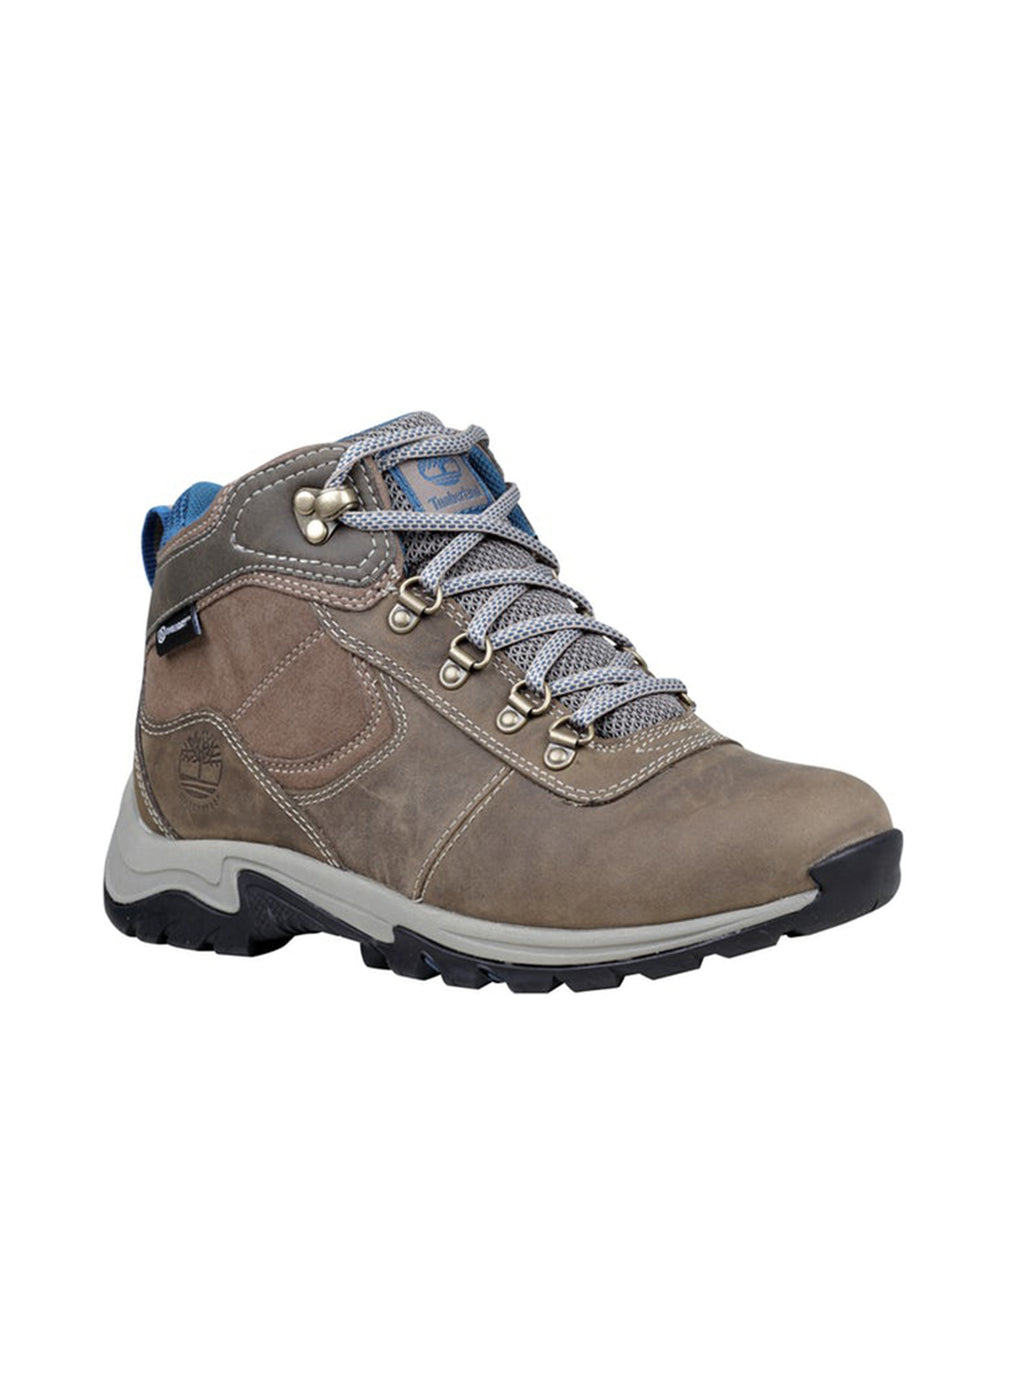 Timberland Mt. Maddsen Leather Mid Waterproof - Women's